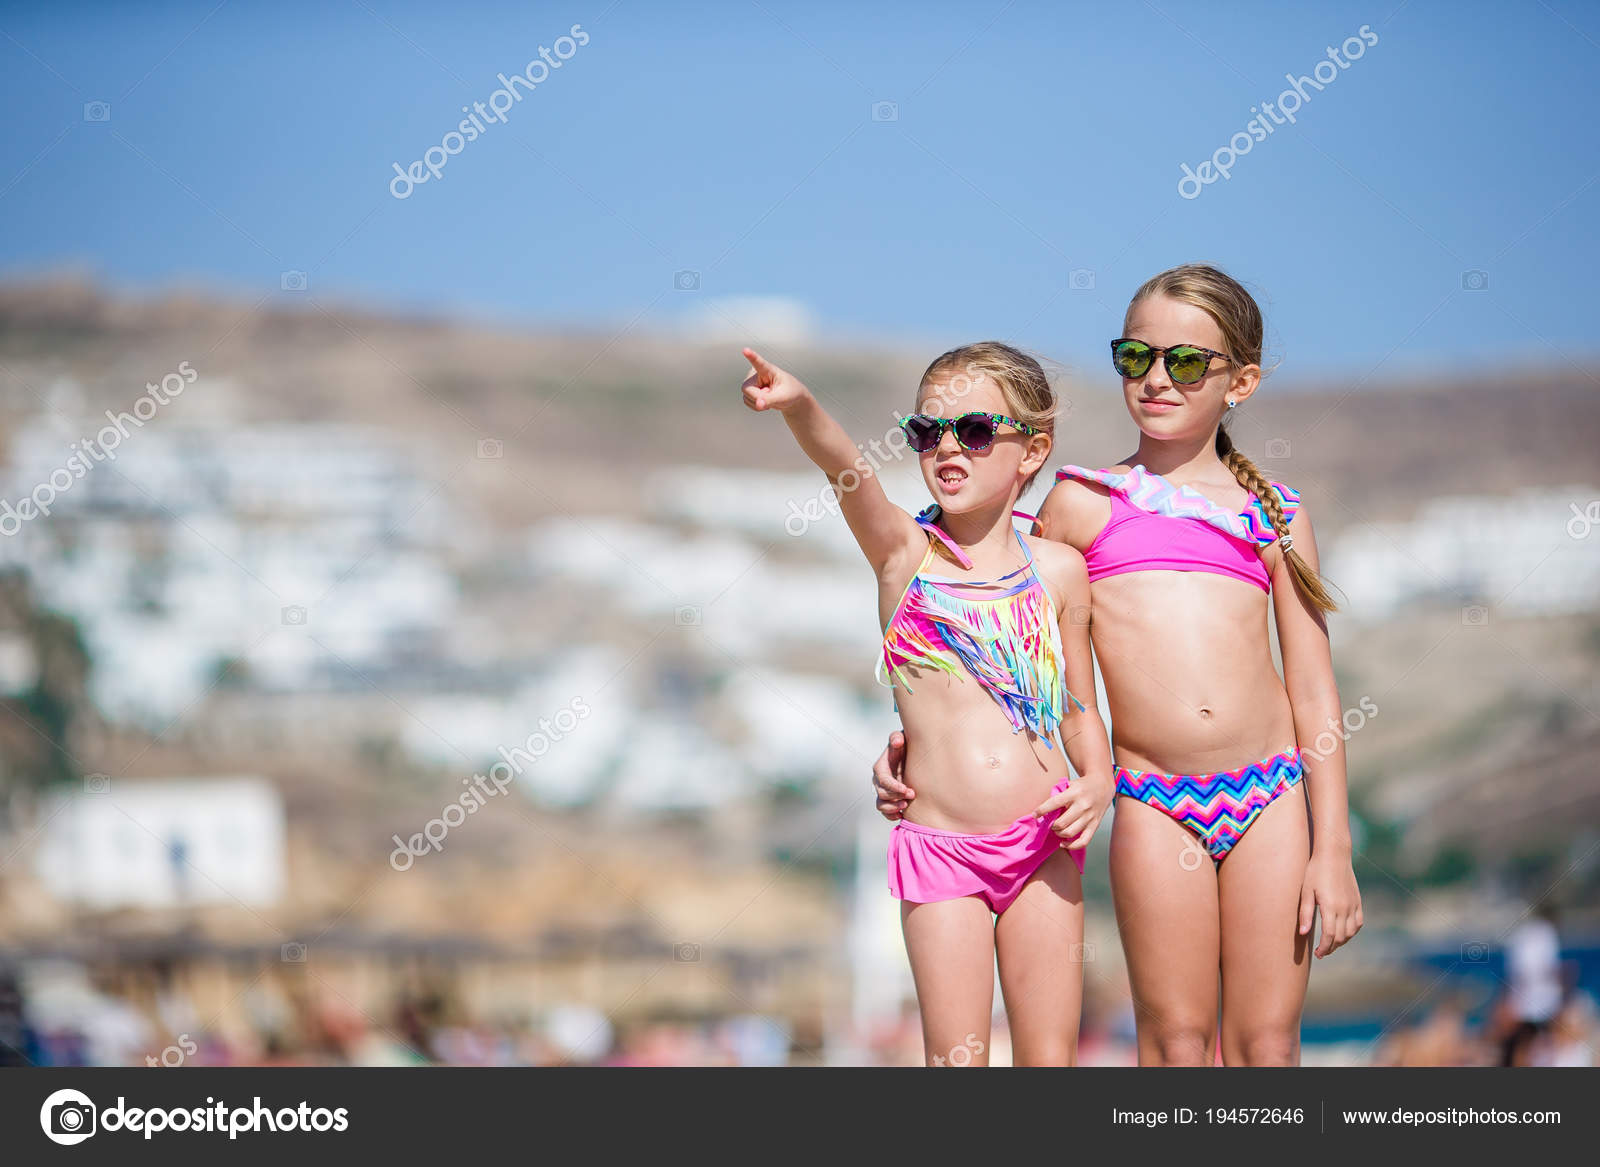 fd142efbd2df5 Adorable little girls having fun during beach vacation. Two kids together  on greek vacation — Photo by ...